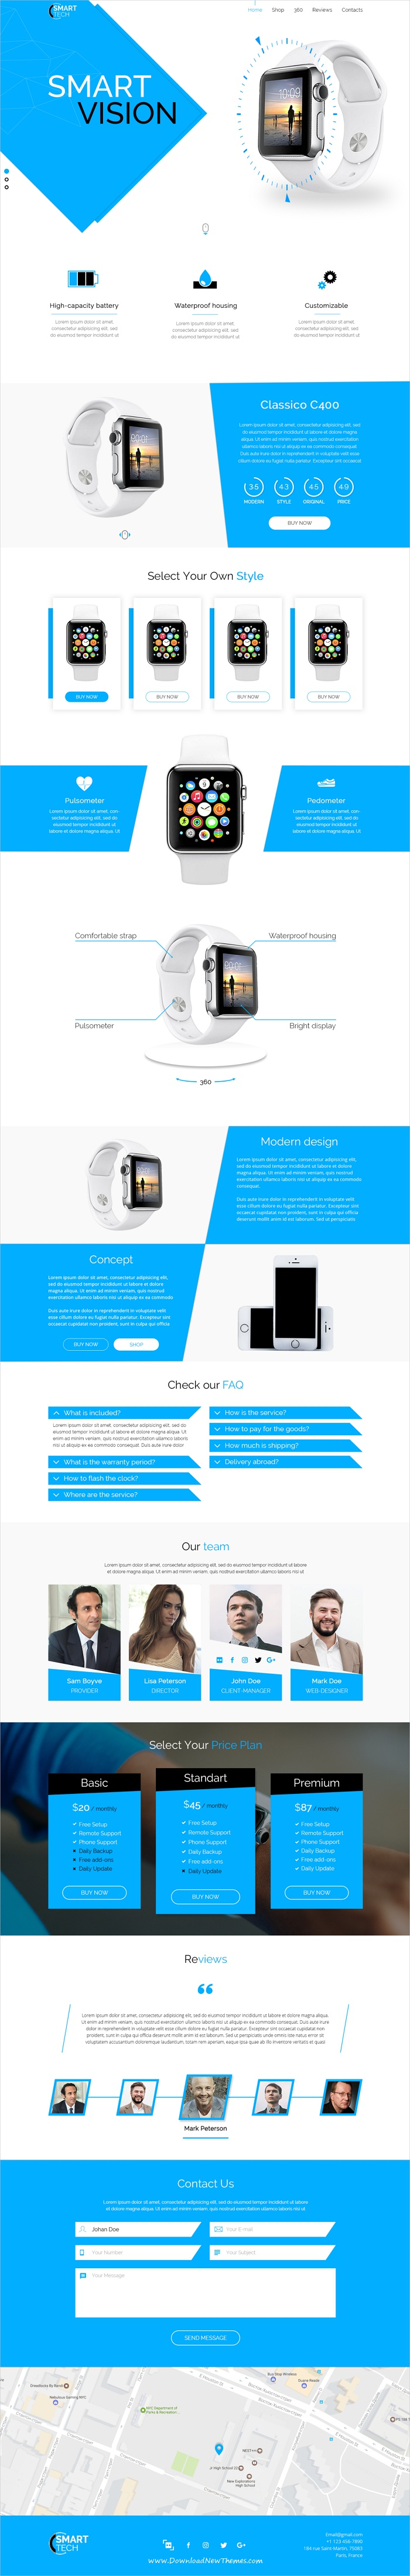 Smart tech is clean and modern design #Photoshop template for product #landing page website download now >  https://themeforest.net/item/smart-tech-psd-template/19995901?ref=Datasata